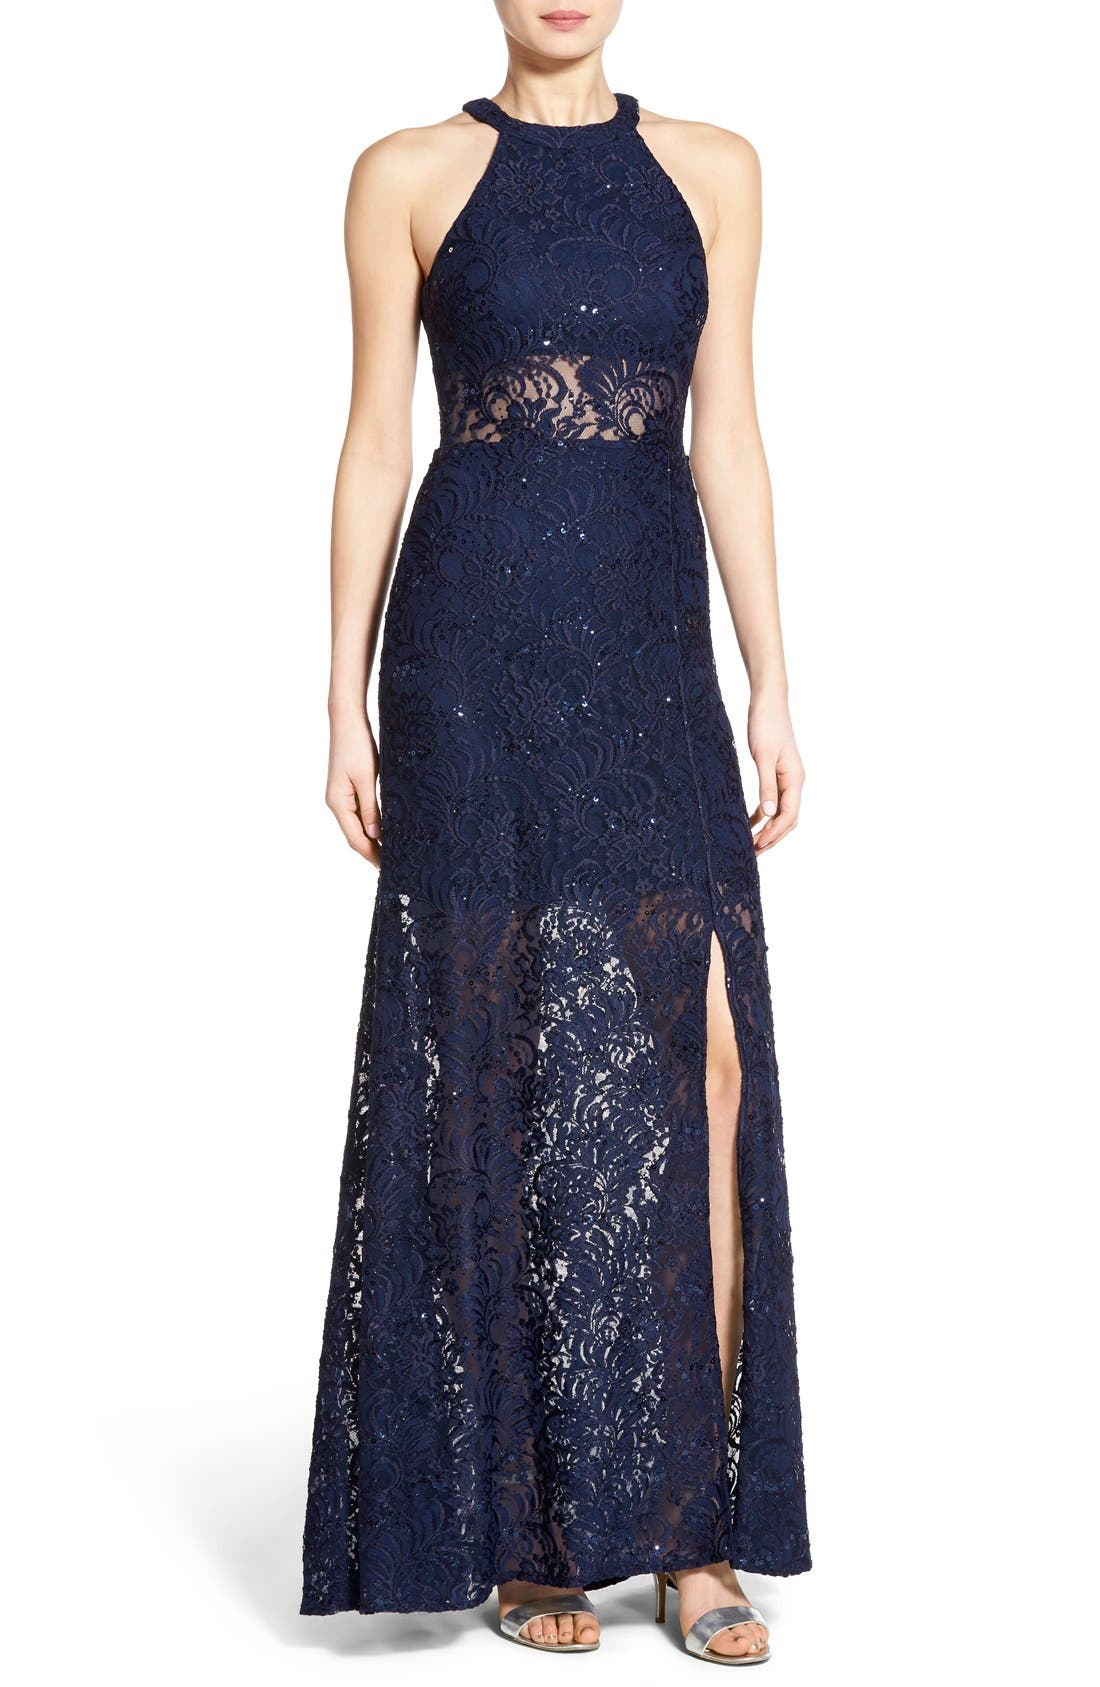 Alternate Image 1 Selected - Morgan & Co. Sequin Lace Halter Gown